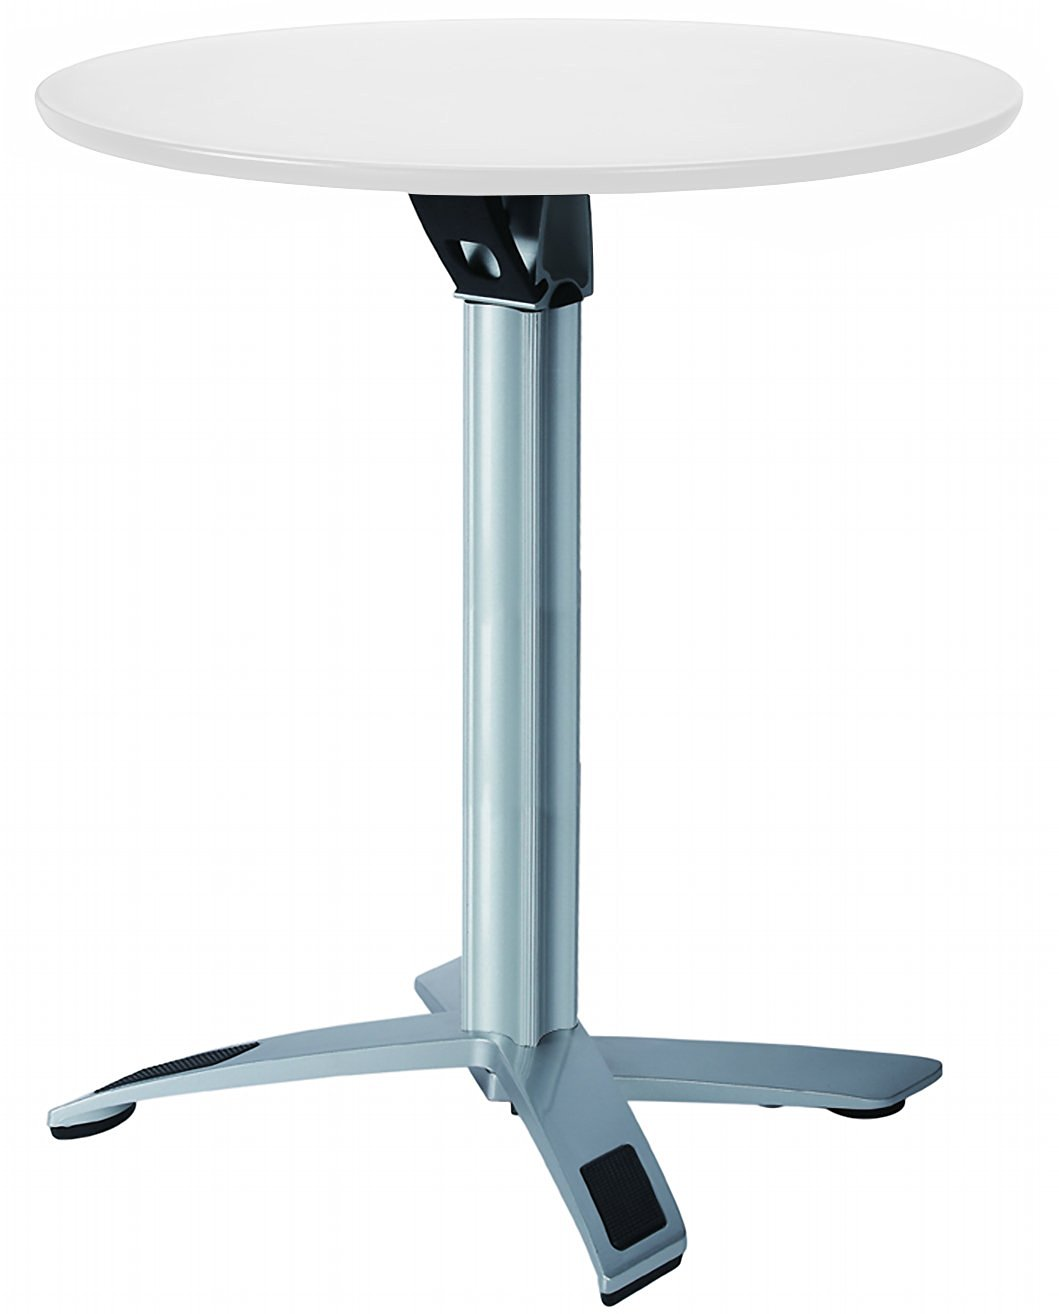 option-1-occasion-bistro-table-white.jpg